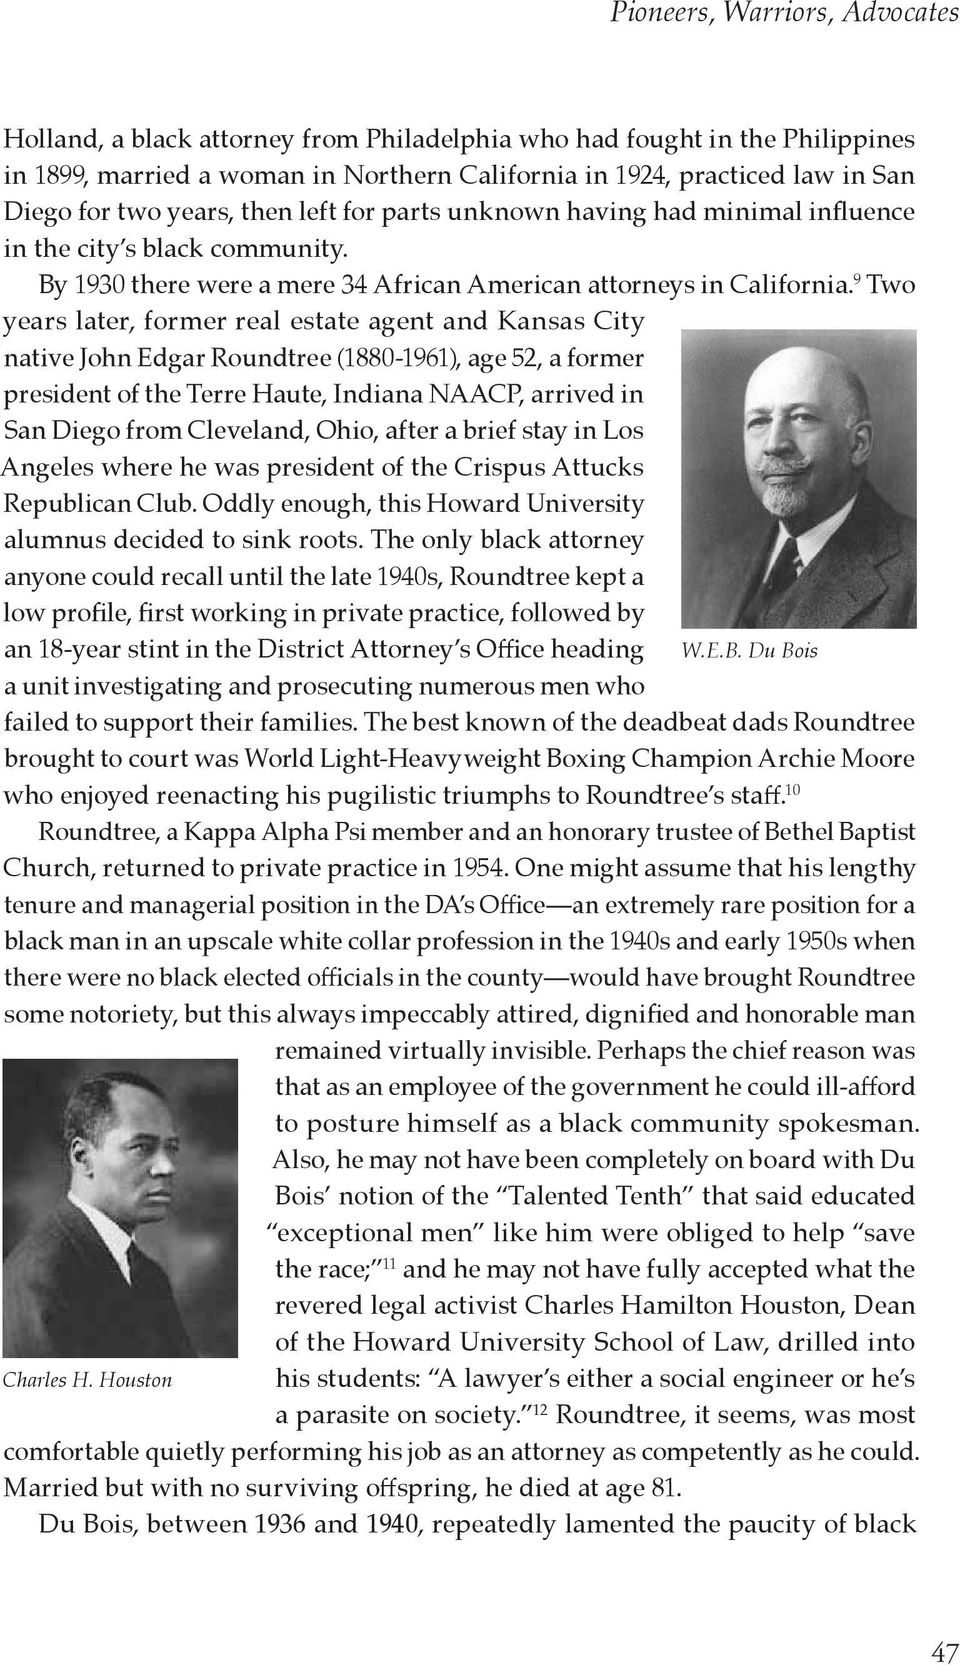 9 Two years later, former real estate agent and Kansas City native John Edgar Roundtree (1880-1961), age 52, a former president of the Terre Haute, Indiana NAACP, arrived in San Diego from Cleveland,